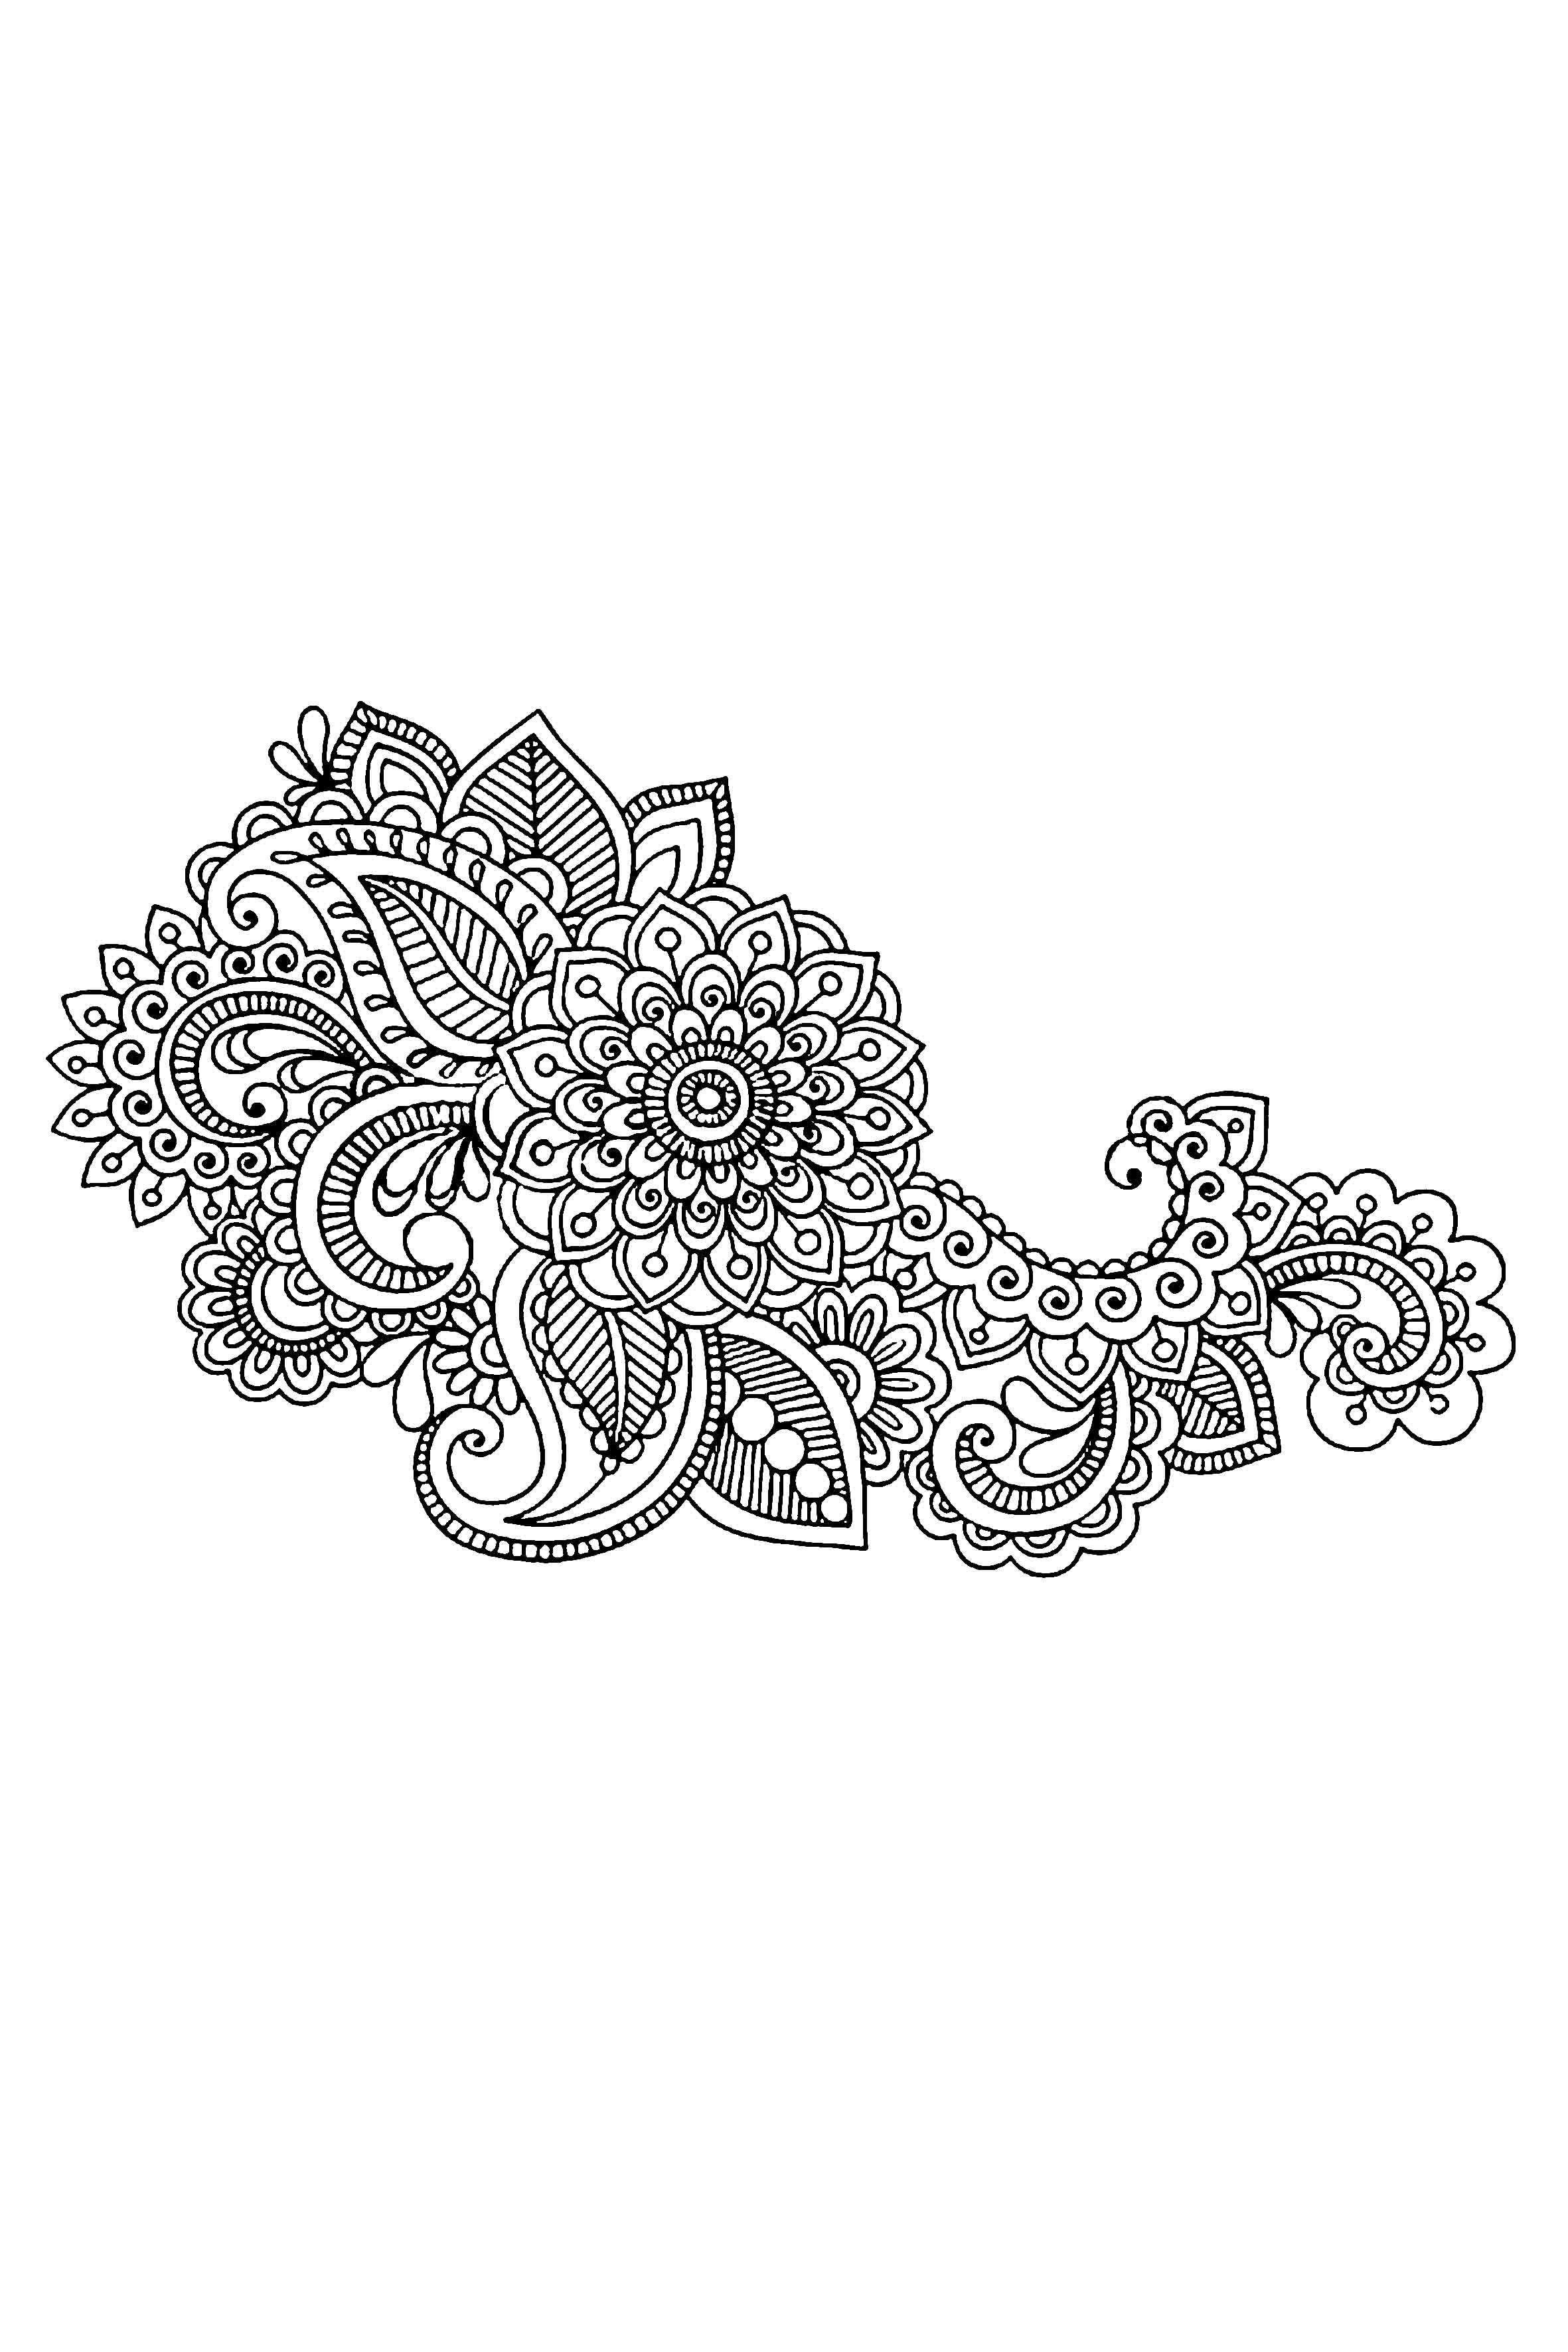 http://tattoo-pro.ru/upload/images/Temp/stock-vector-hand ...